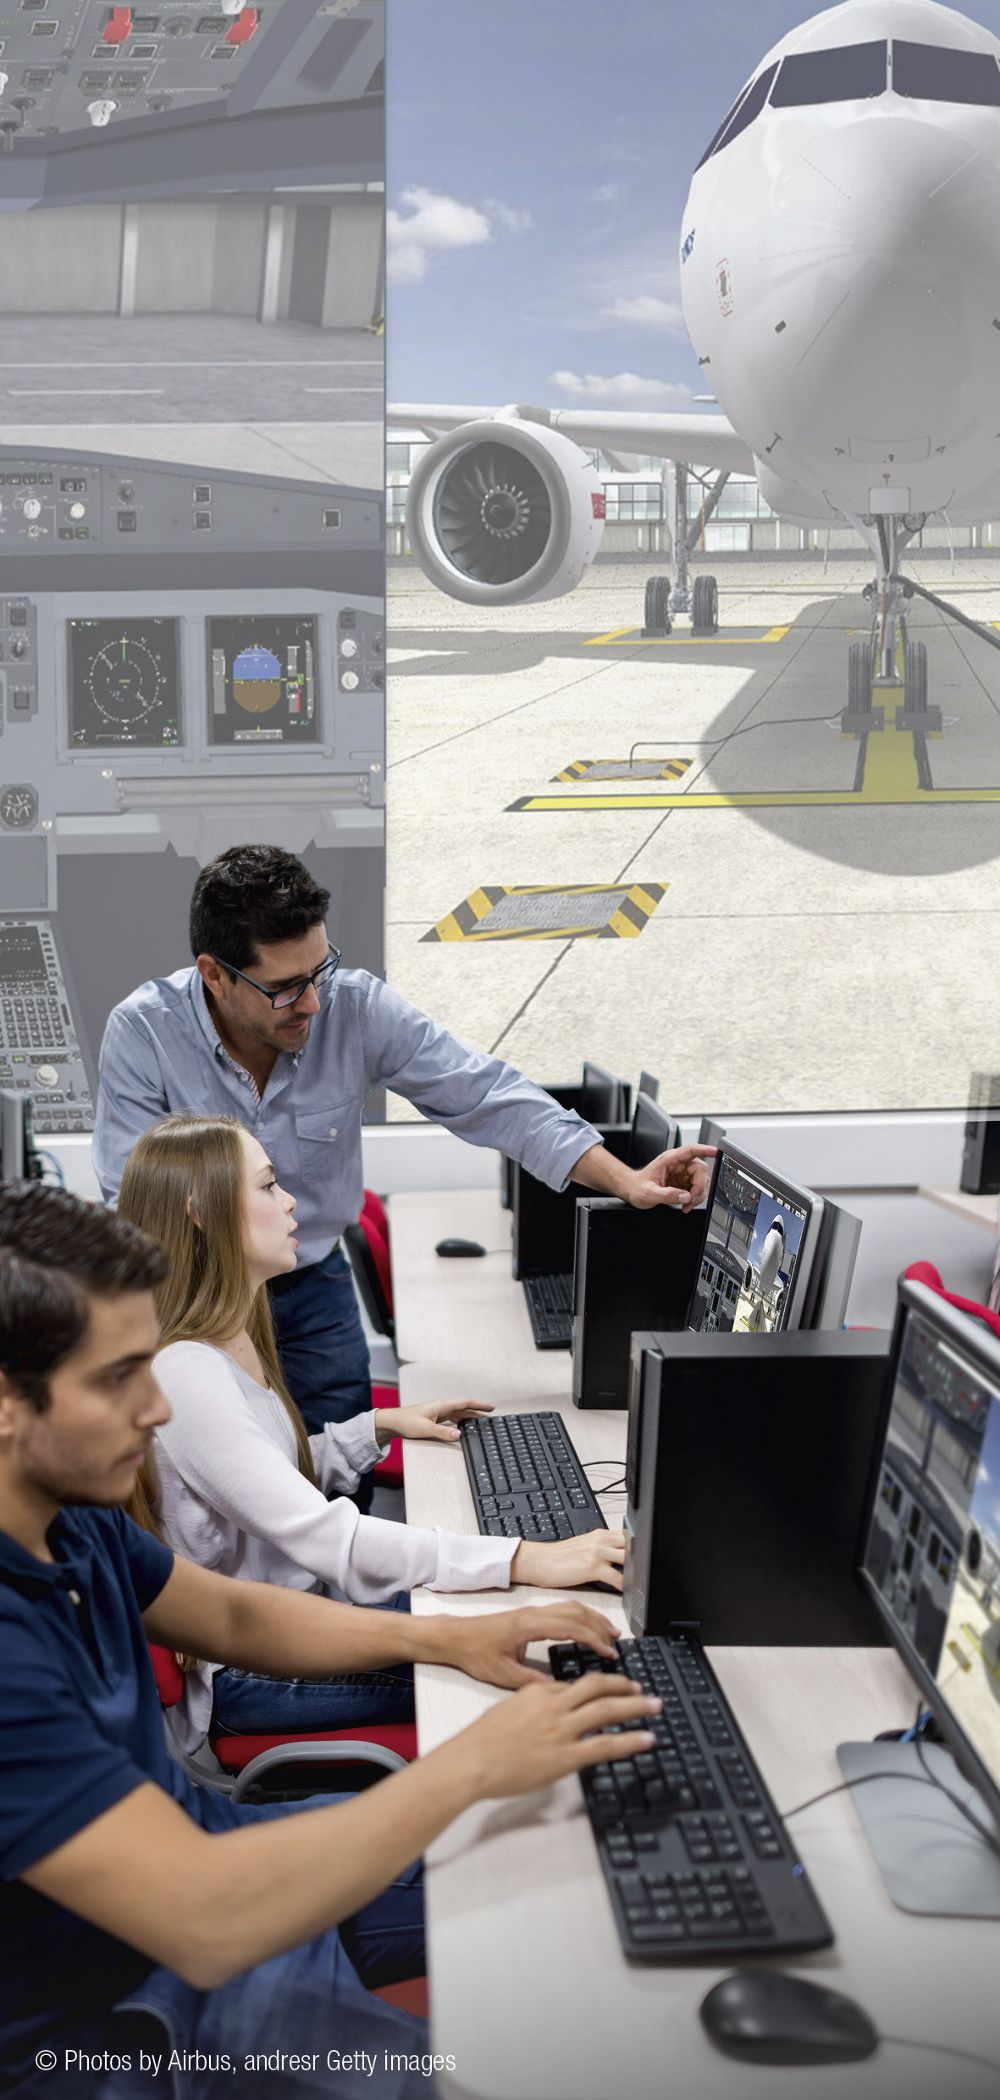 Familiarising students with the latest Airbus aircraft technology and maintenance procedures